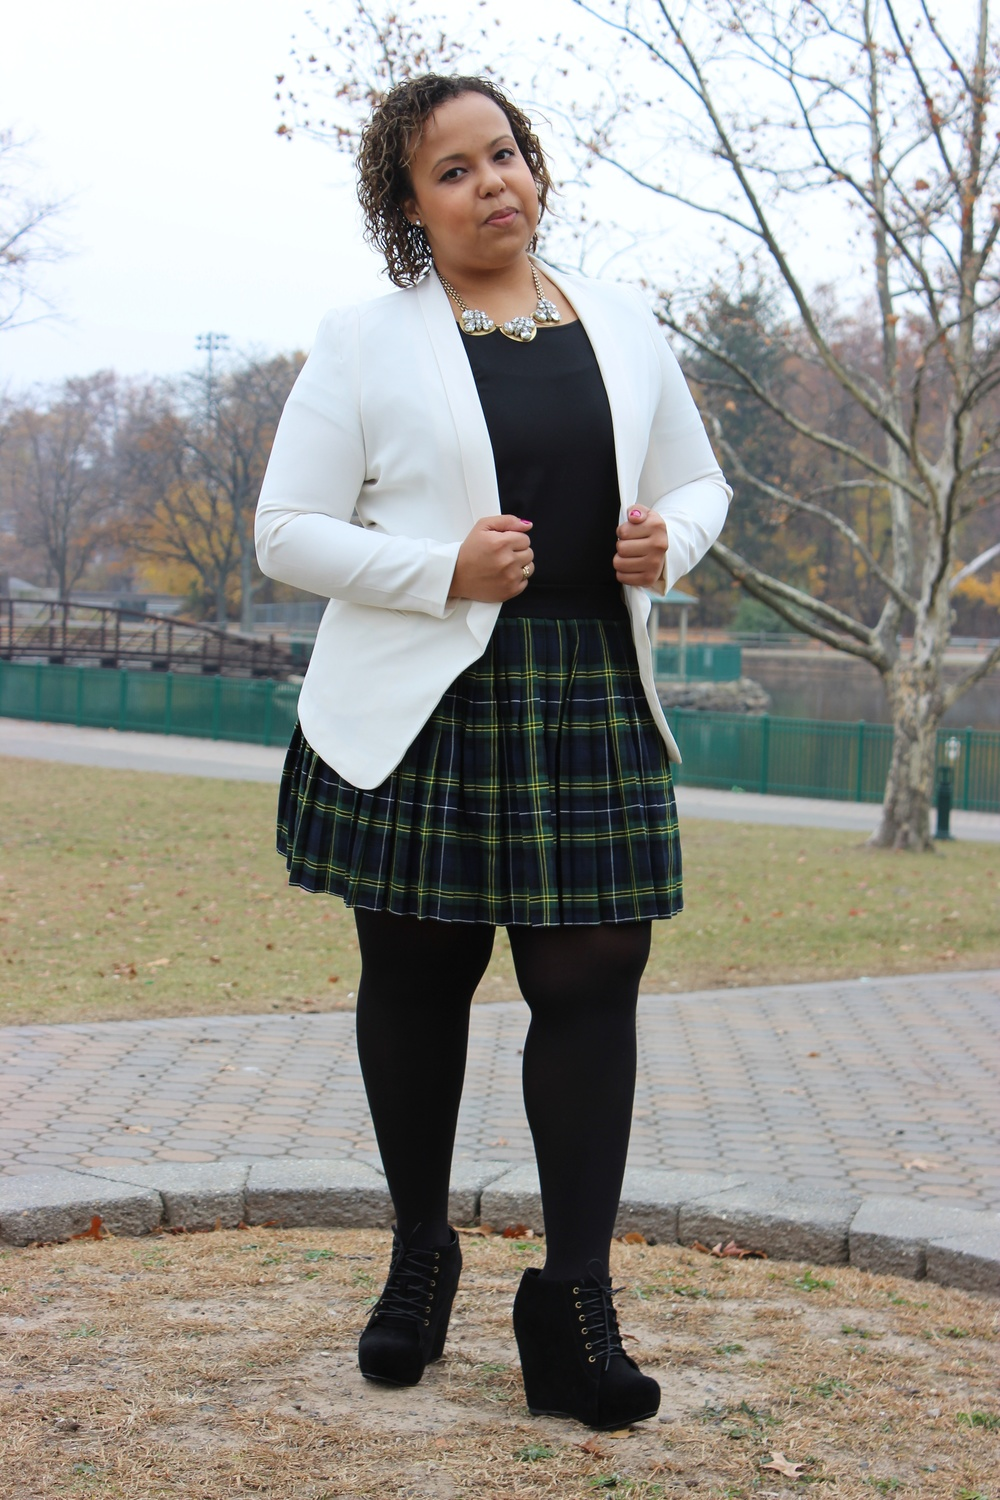 plaid skirt hands on jacket.jpg